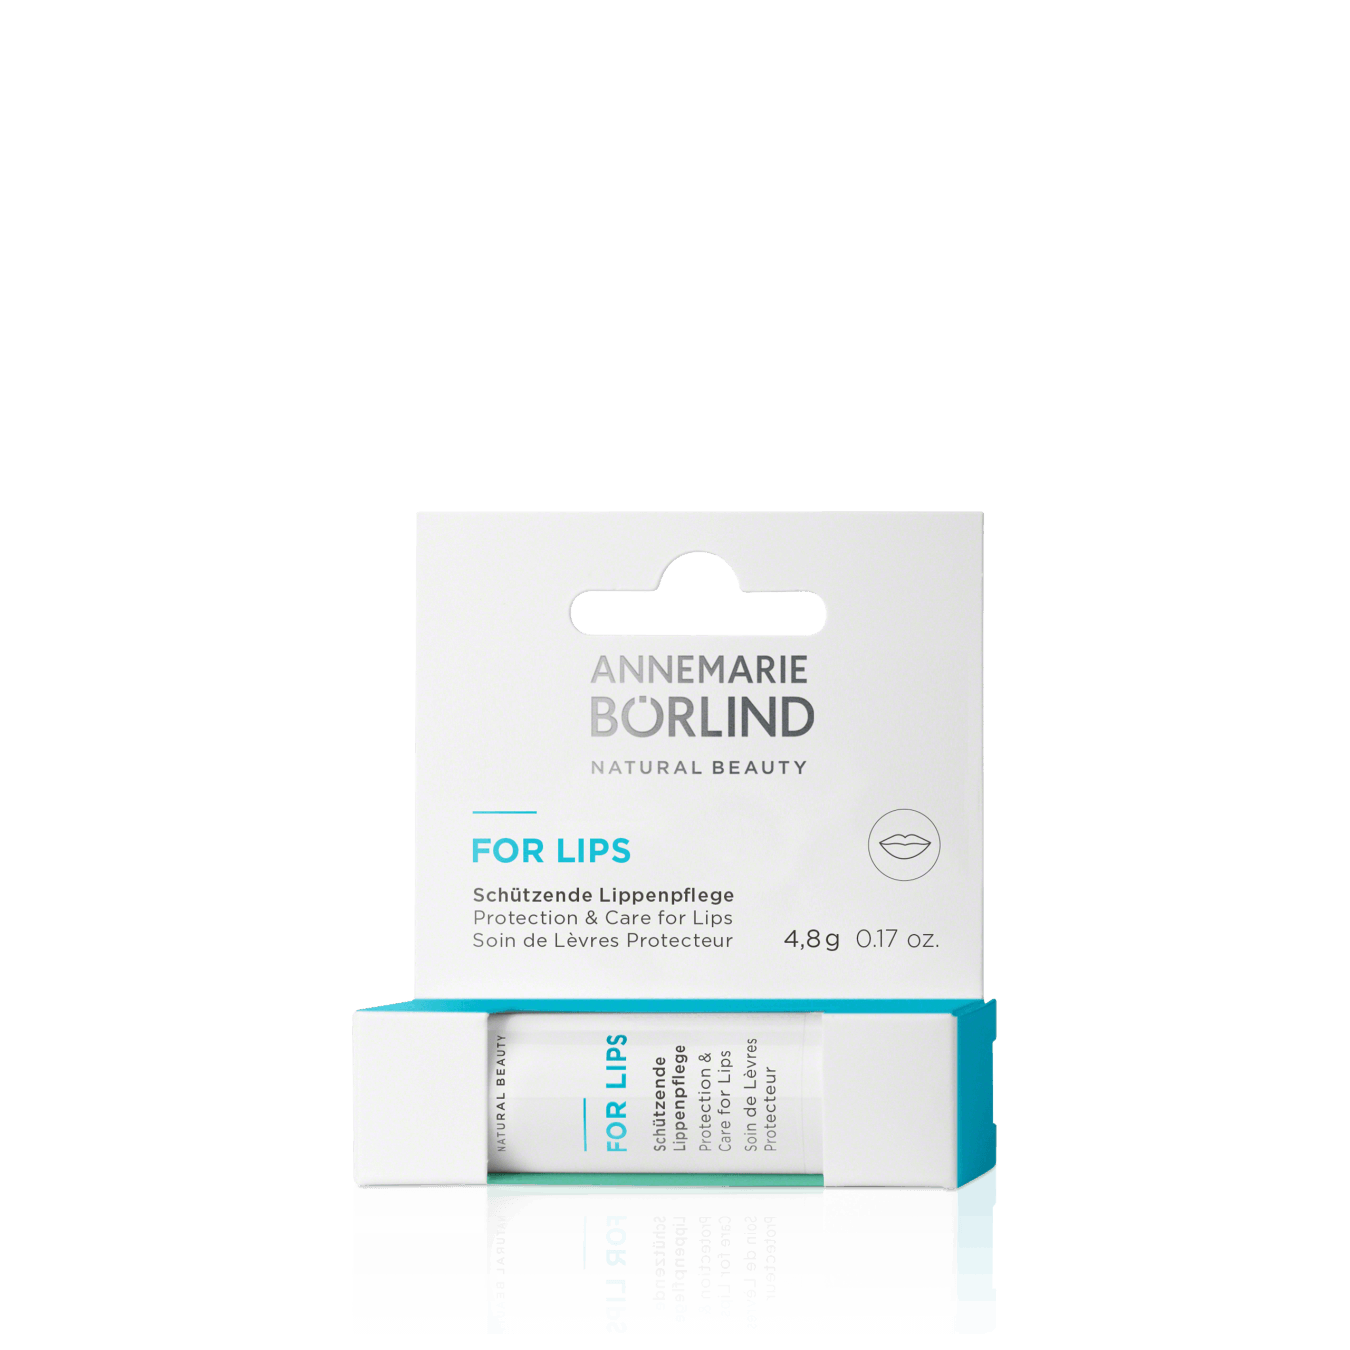 ANNEMARIE BÖRLIND FOR LIPS Protection & Care for Lips - iwellnessbox